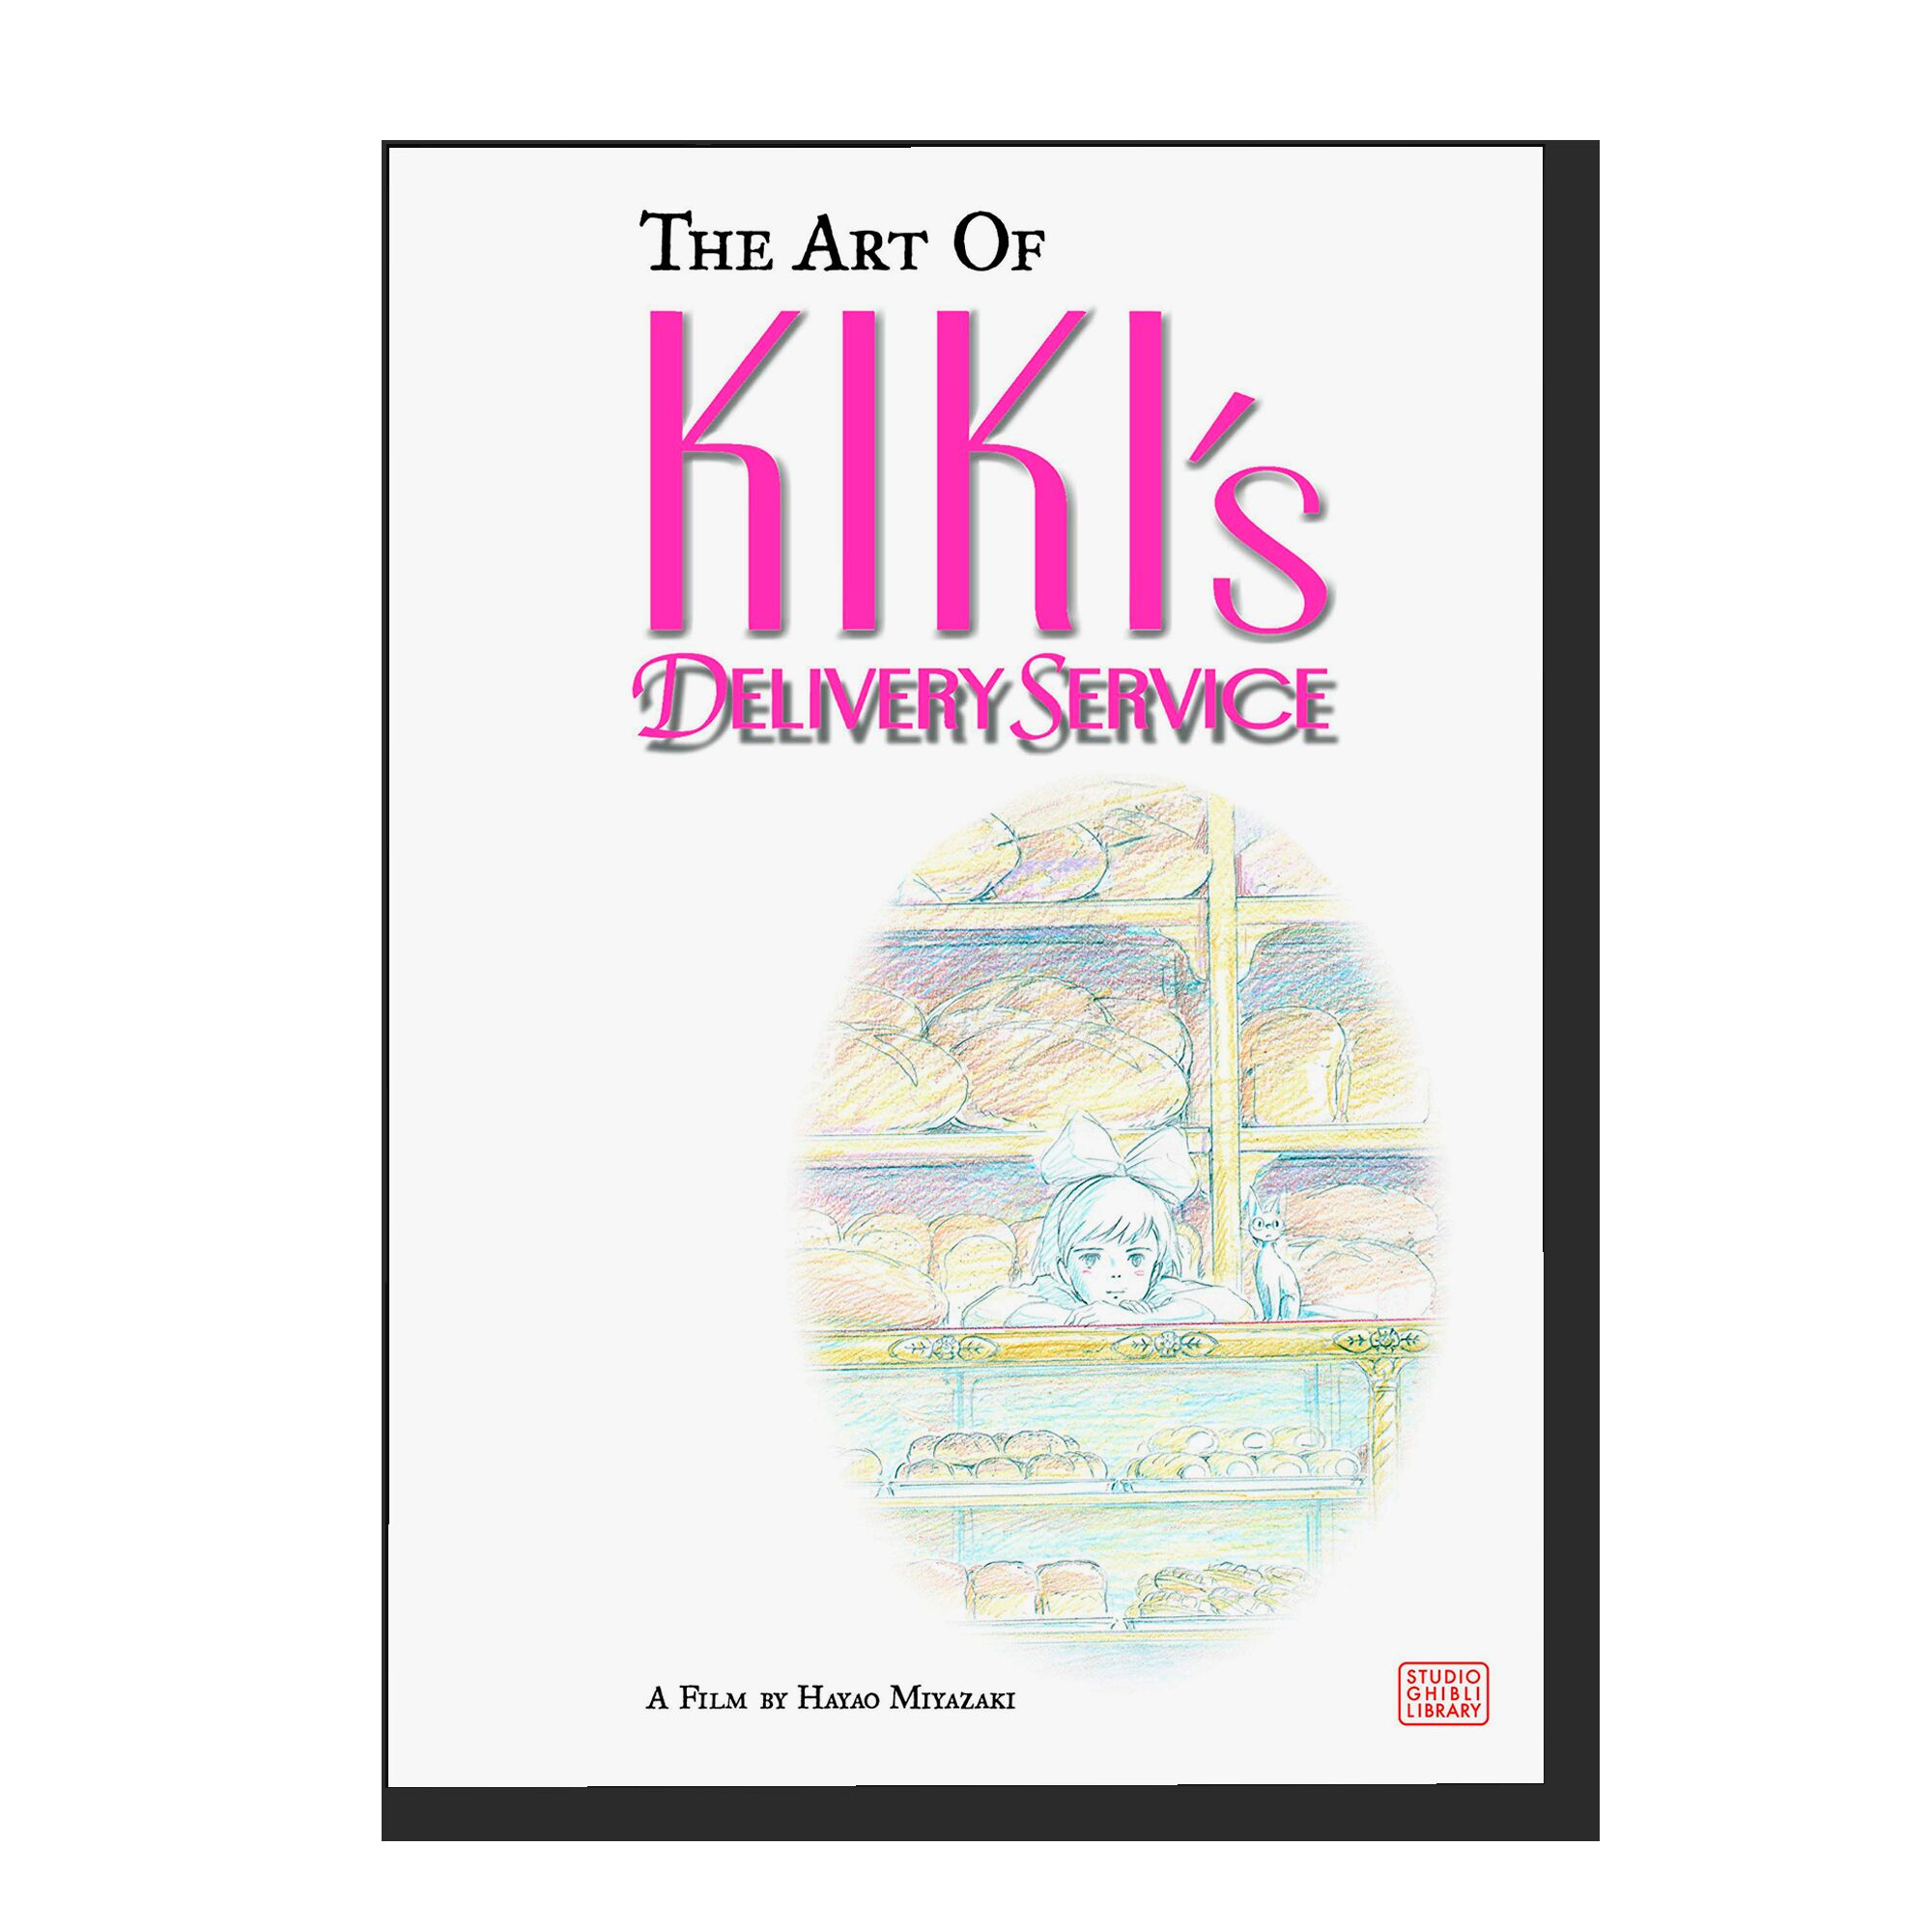 The Art of Kiki's Delivery Service: A Film by Hayao Miyazaki